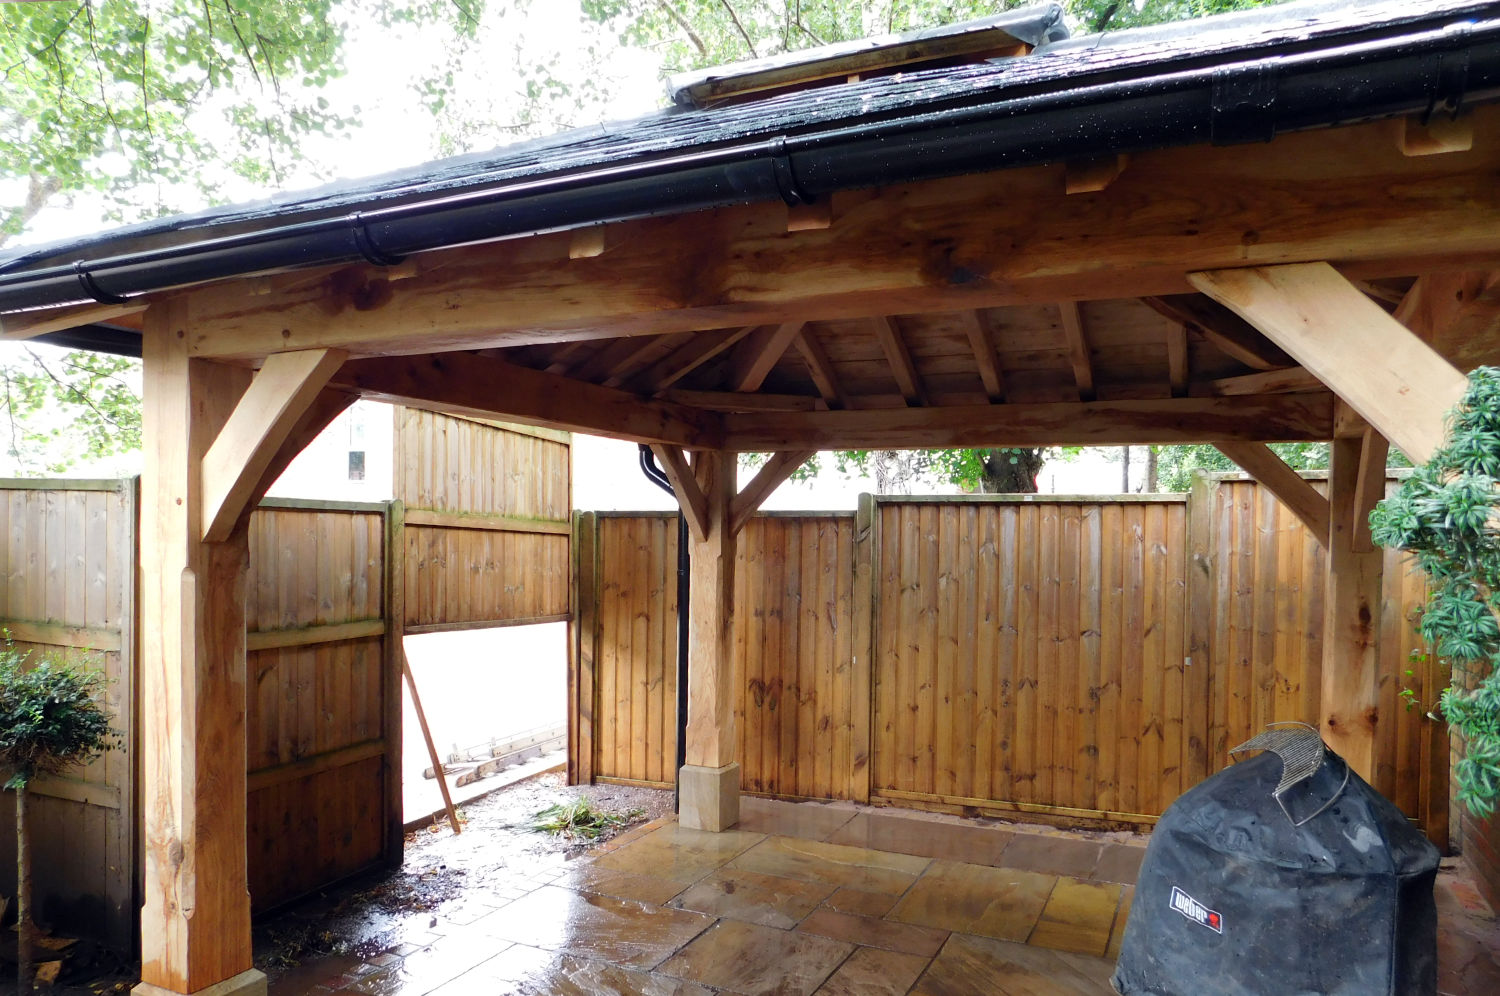 Bespoke oak framed gazebo, canopy for ventilation, slated roof with lead hip roles